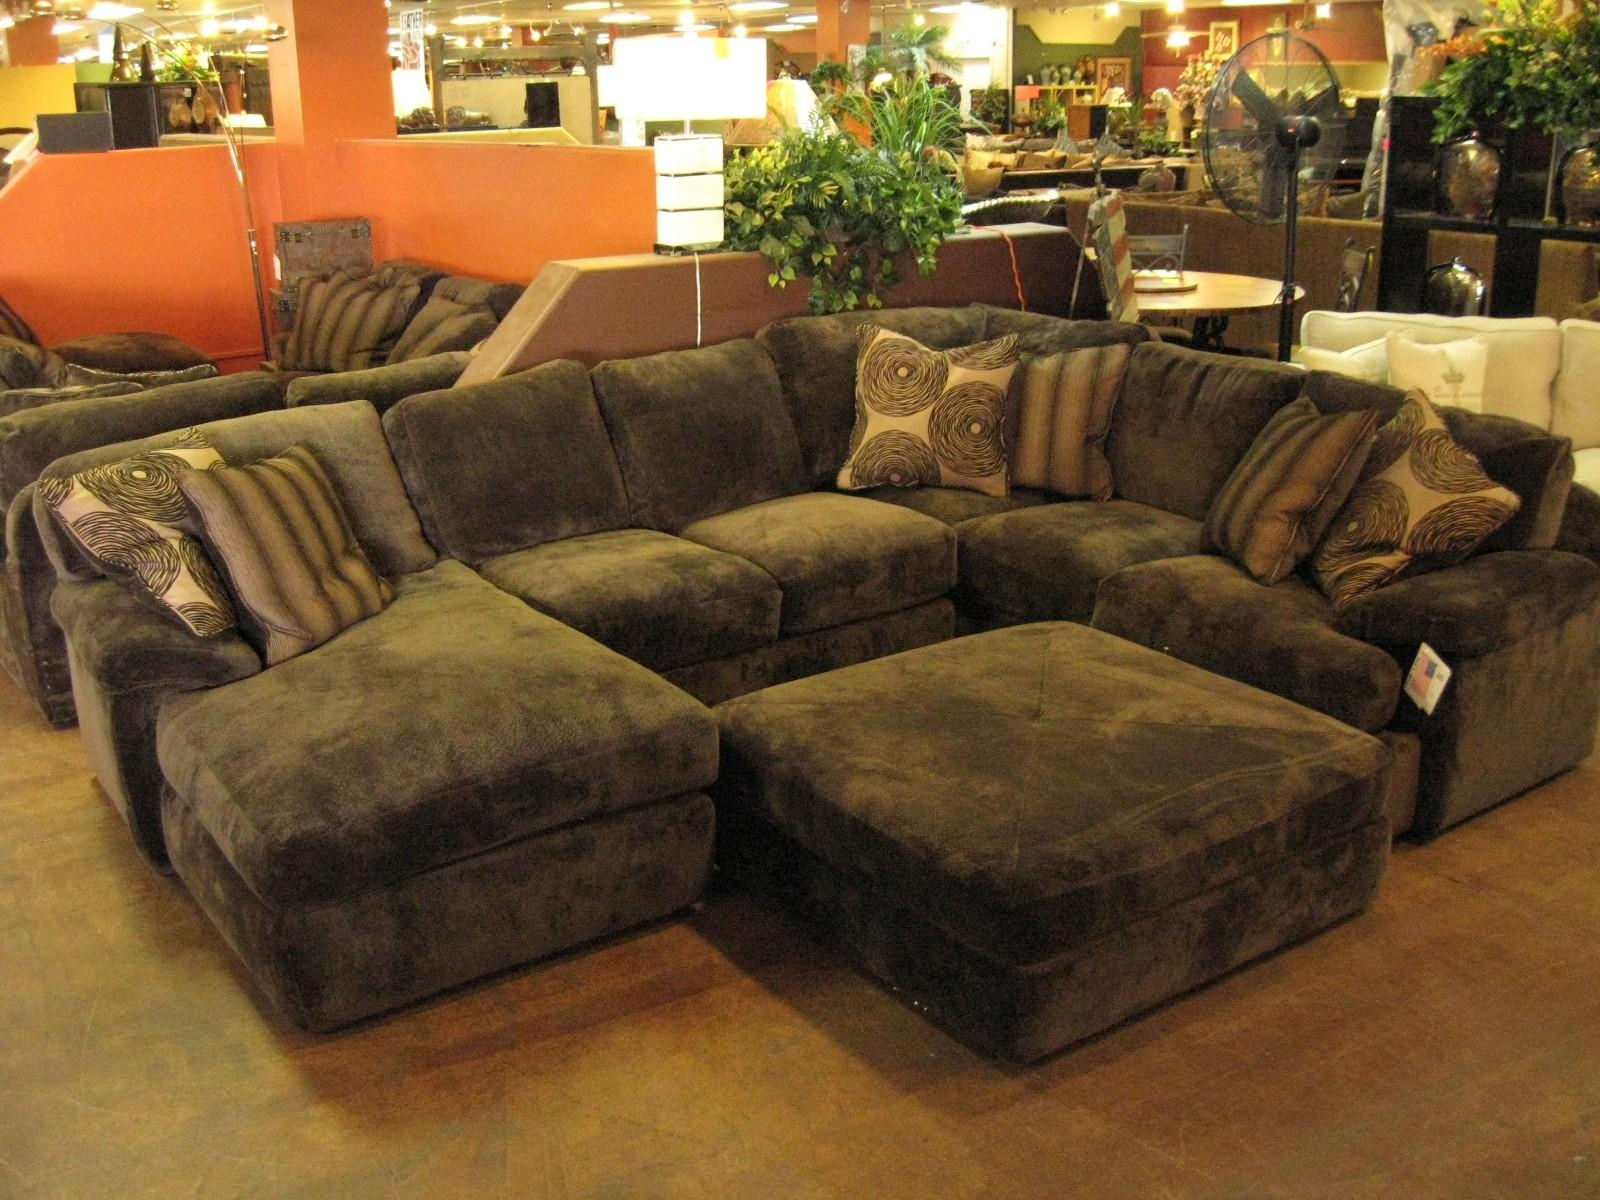 Featured Image of Sectional Sofa With Oversized Ottoman